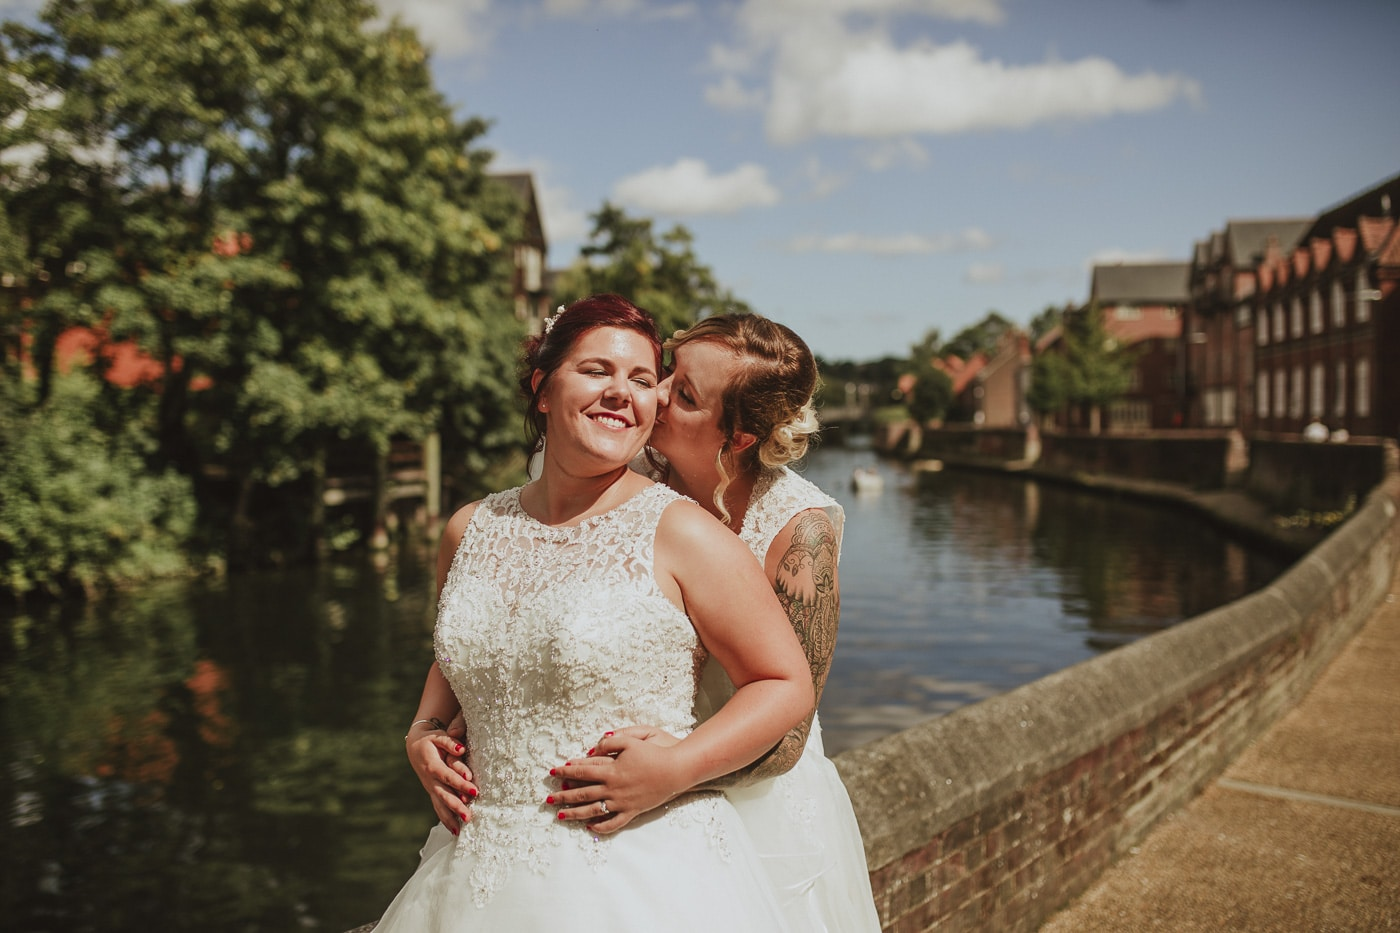 Brides kissing next to the river for wedding by Joshua Wyborn photography